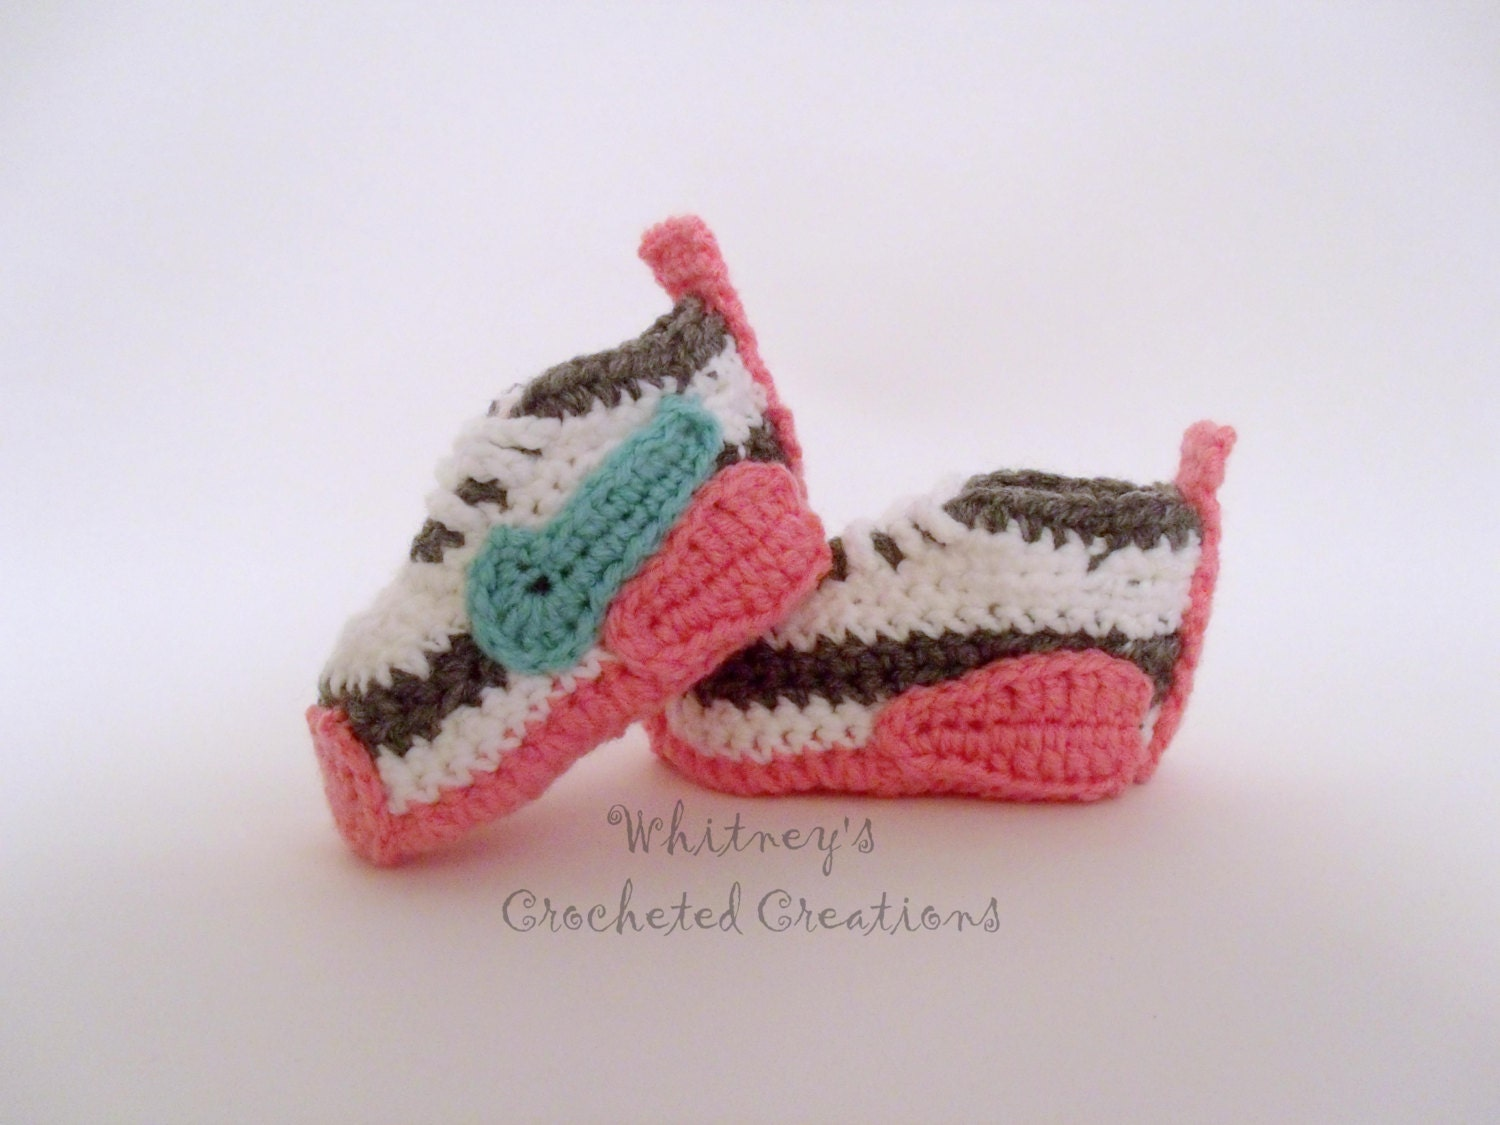 Nike Inspired tennis shoes Crochet pattern by crochetforkids1828